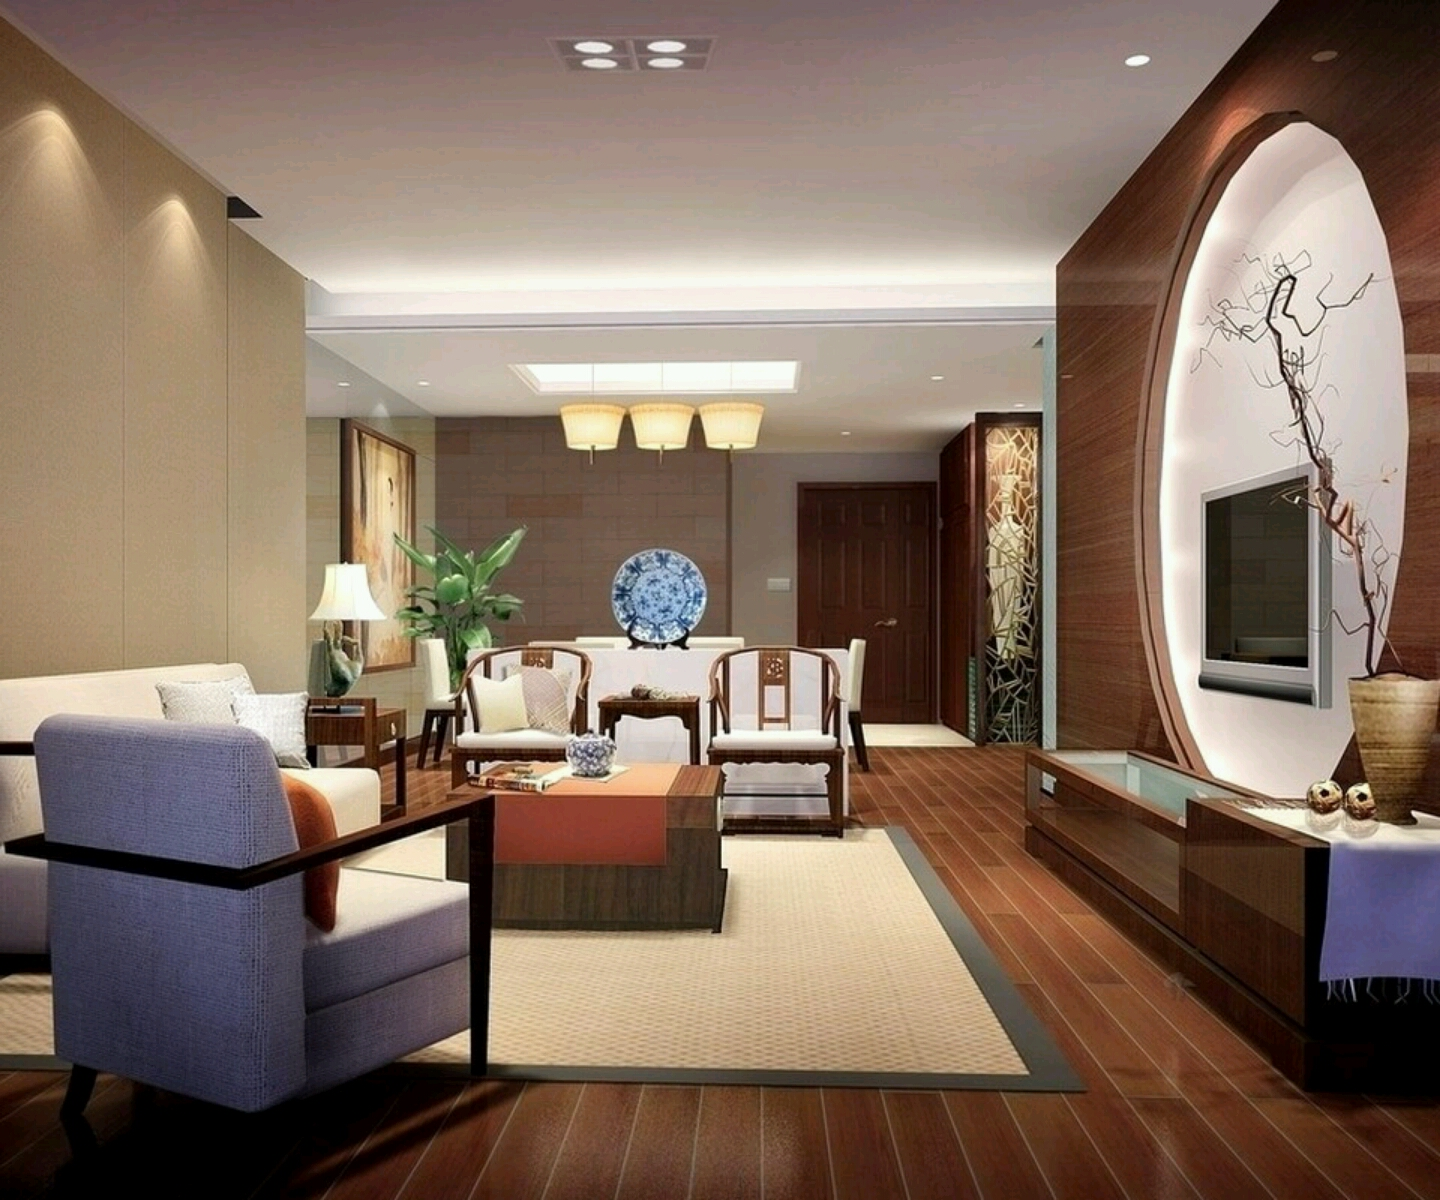 Luxury homes interior decoration living room designs ideas for Living room interior decor